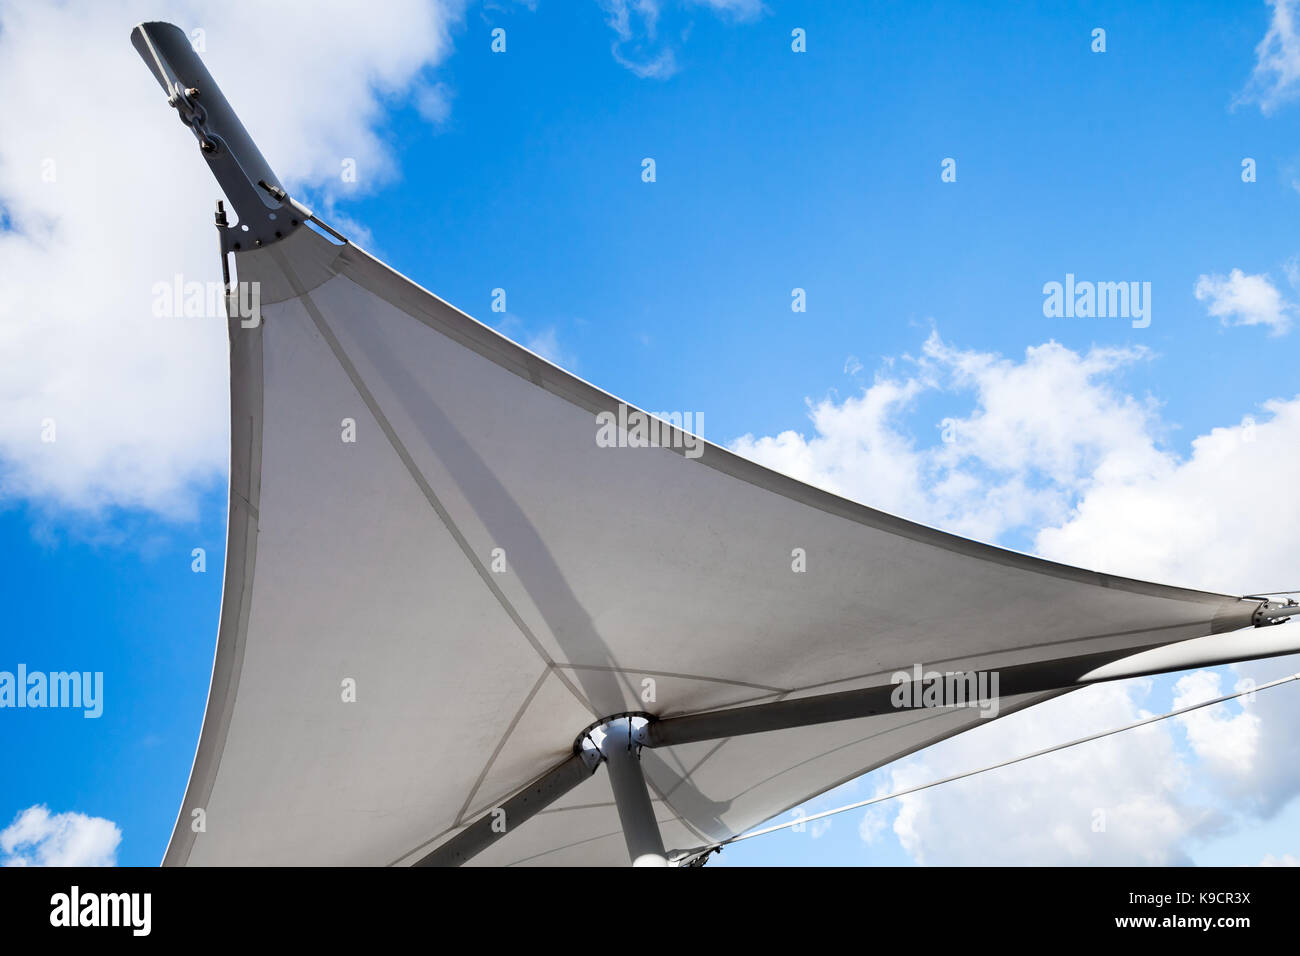 Awning in sail shape under cloudy sky background Stock Photo